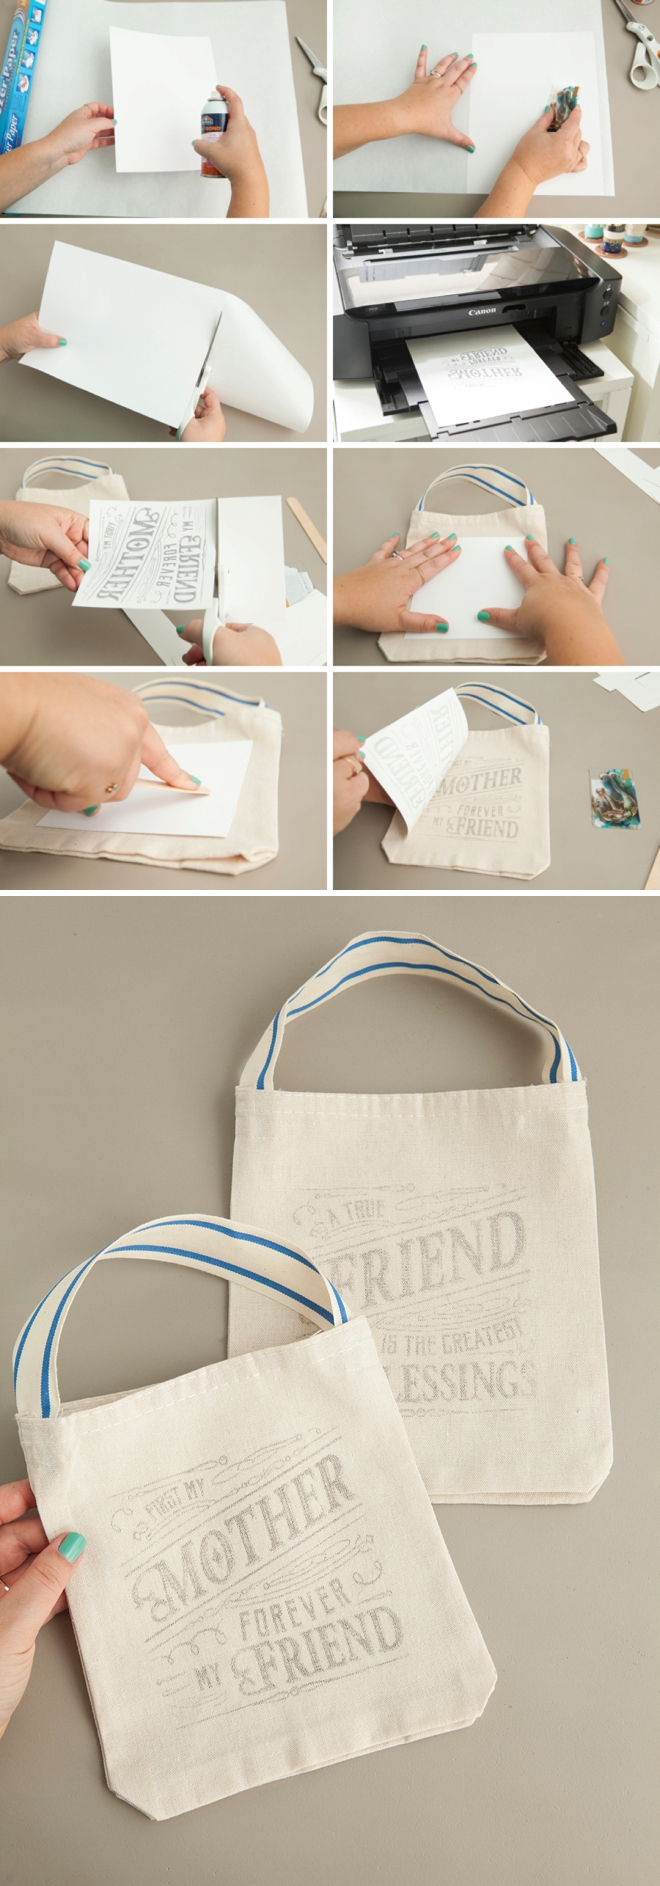 Awesome Freezer Paper Transfer - Bridal Party Tote Bags!